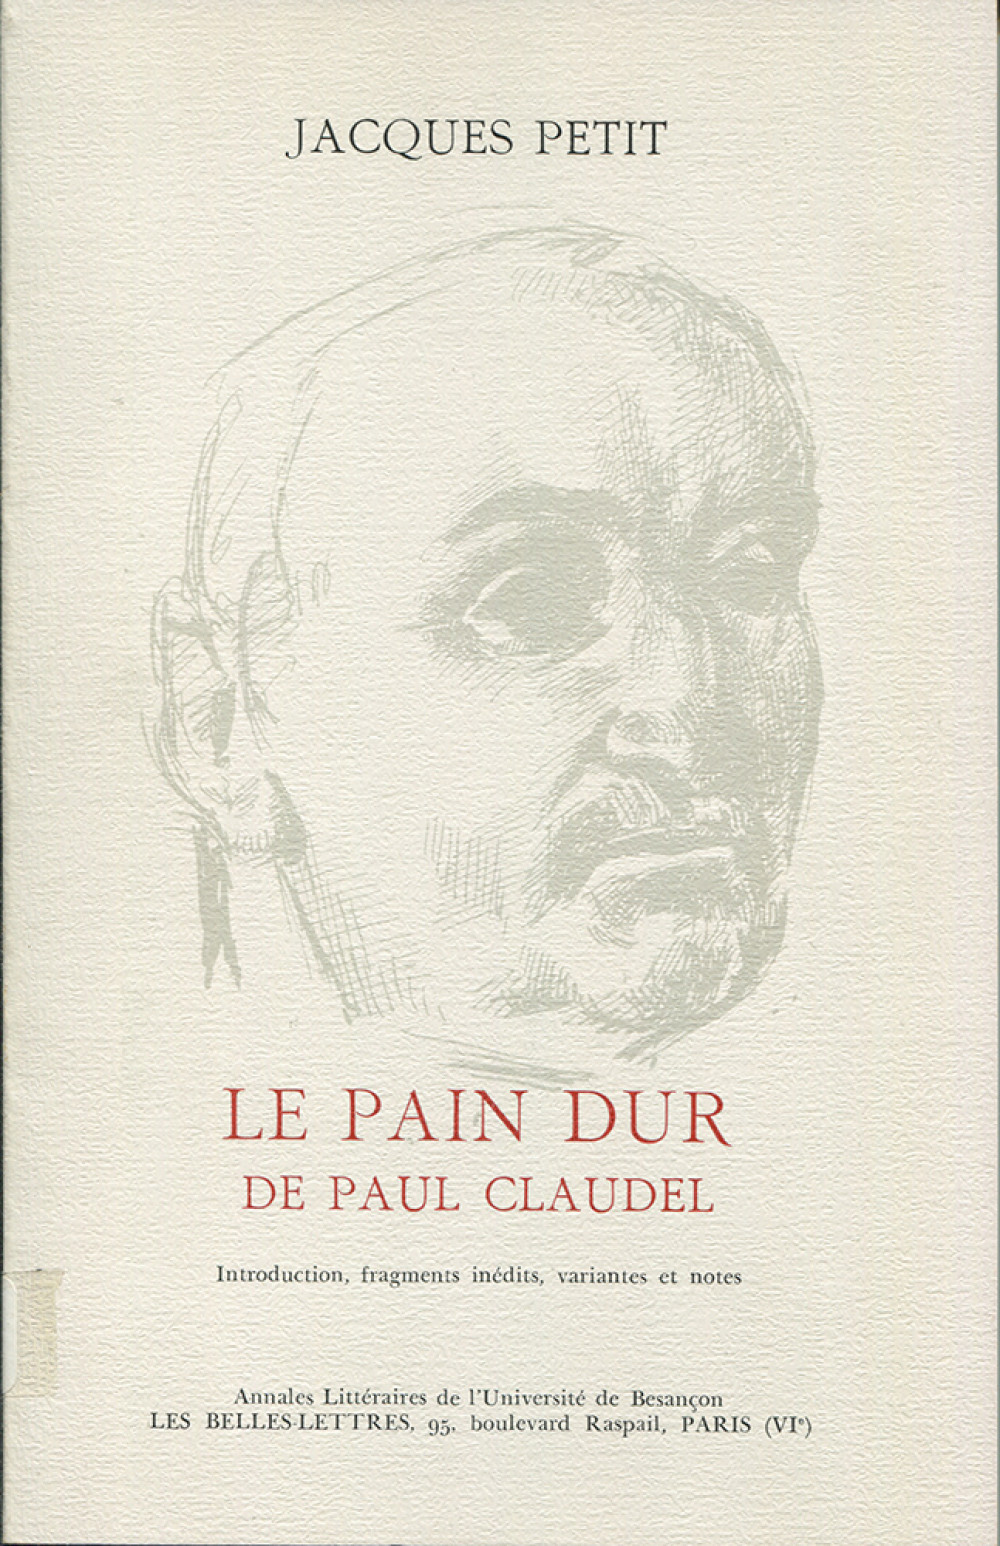 Le pain dur de Paul Claudel